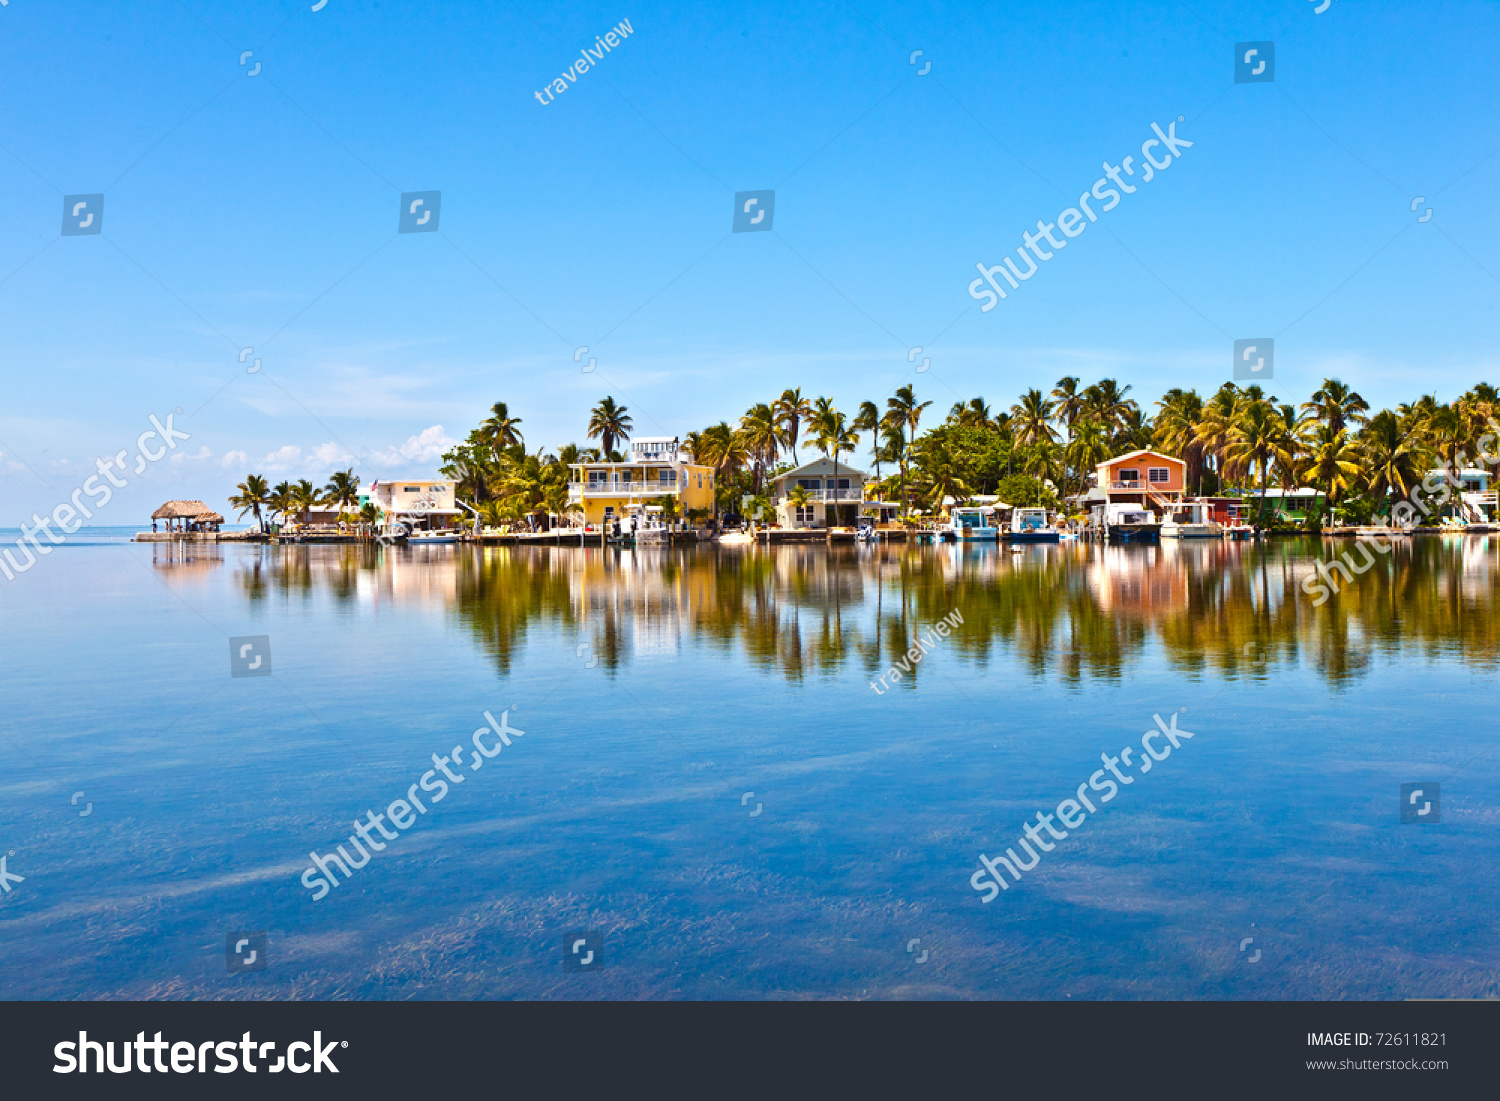 Beautiful living area in the keys stock photo 72611821 for Most beautiful cities in florida